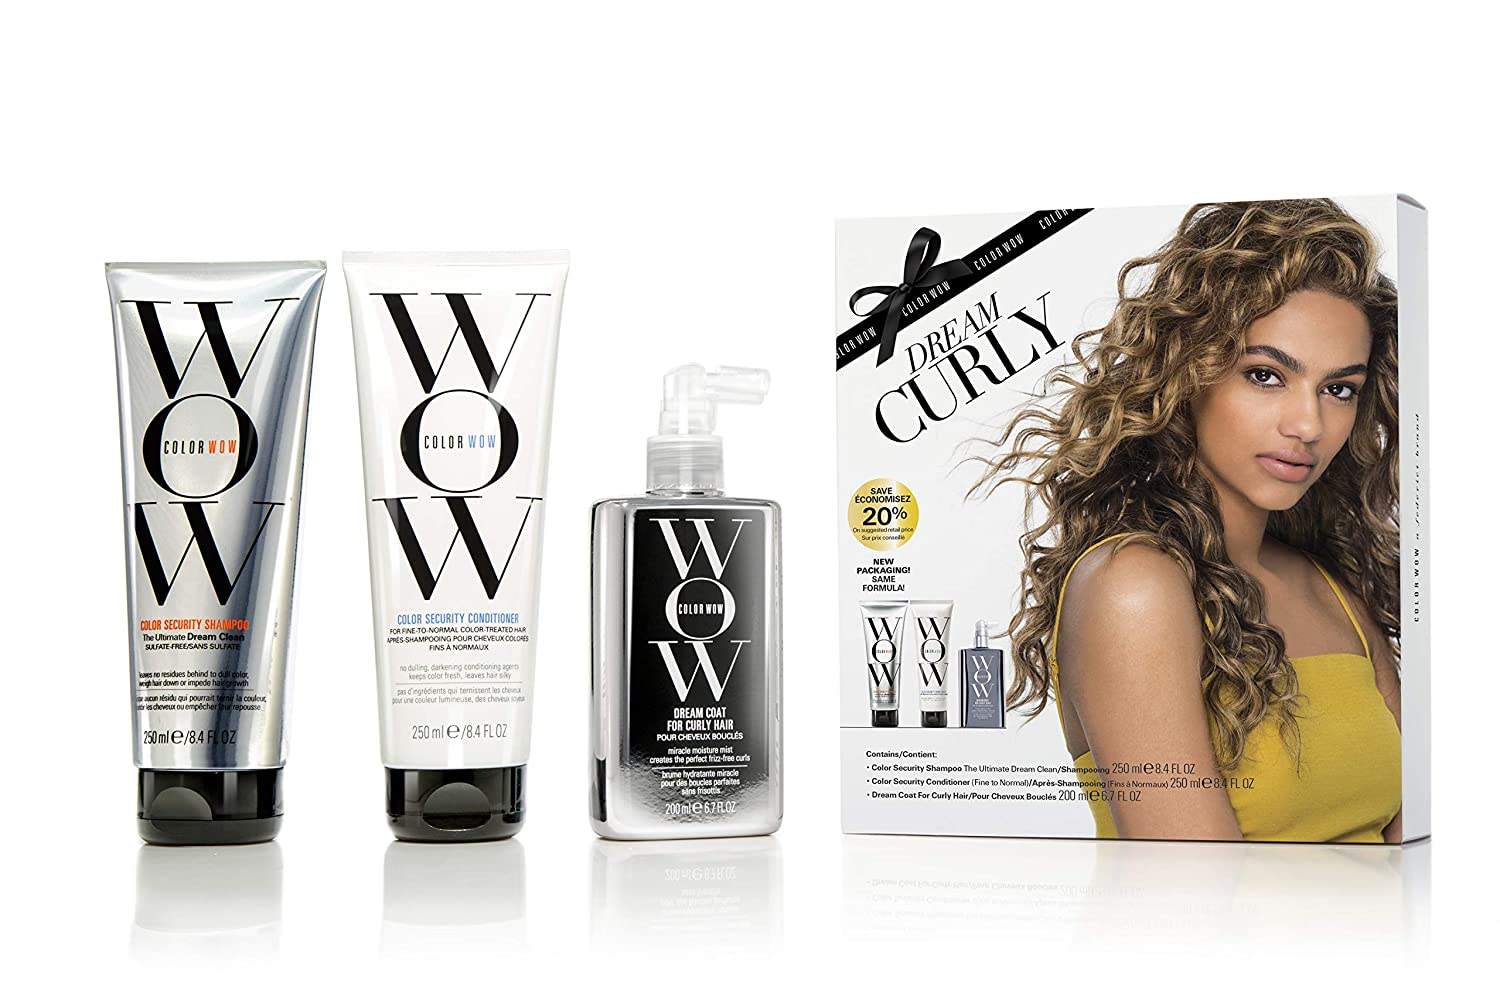 COLOR WOW Dream Curly Kit